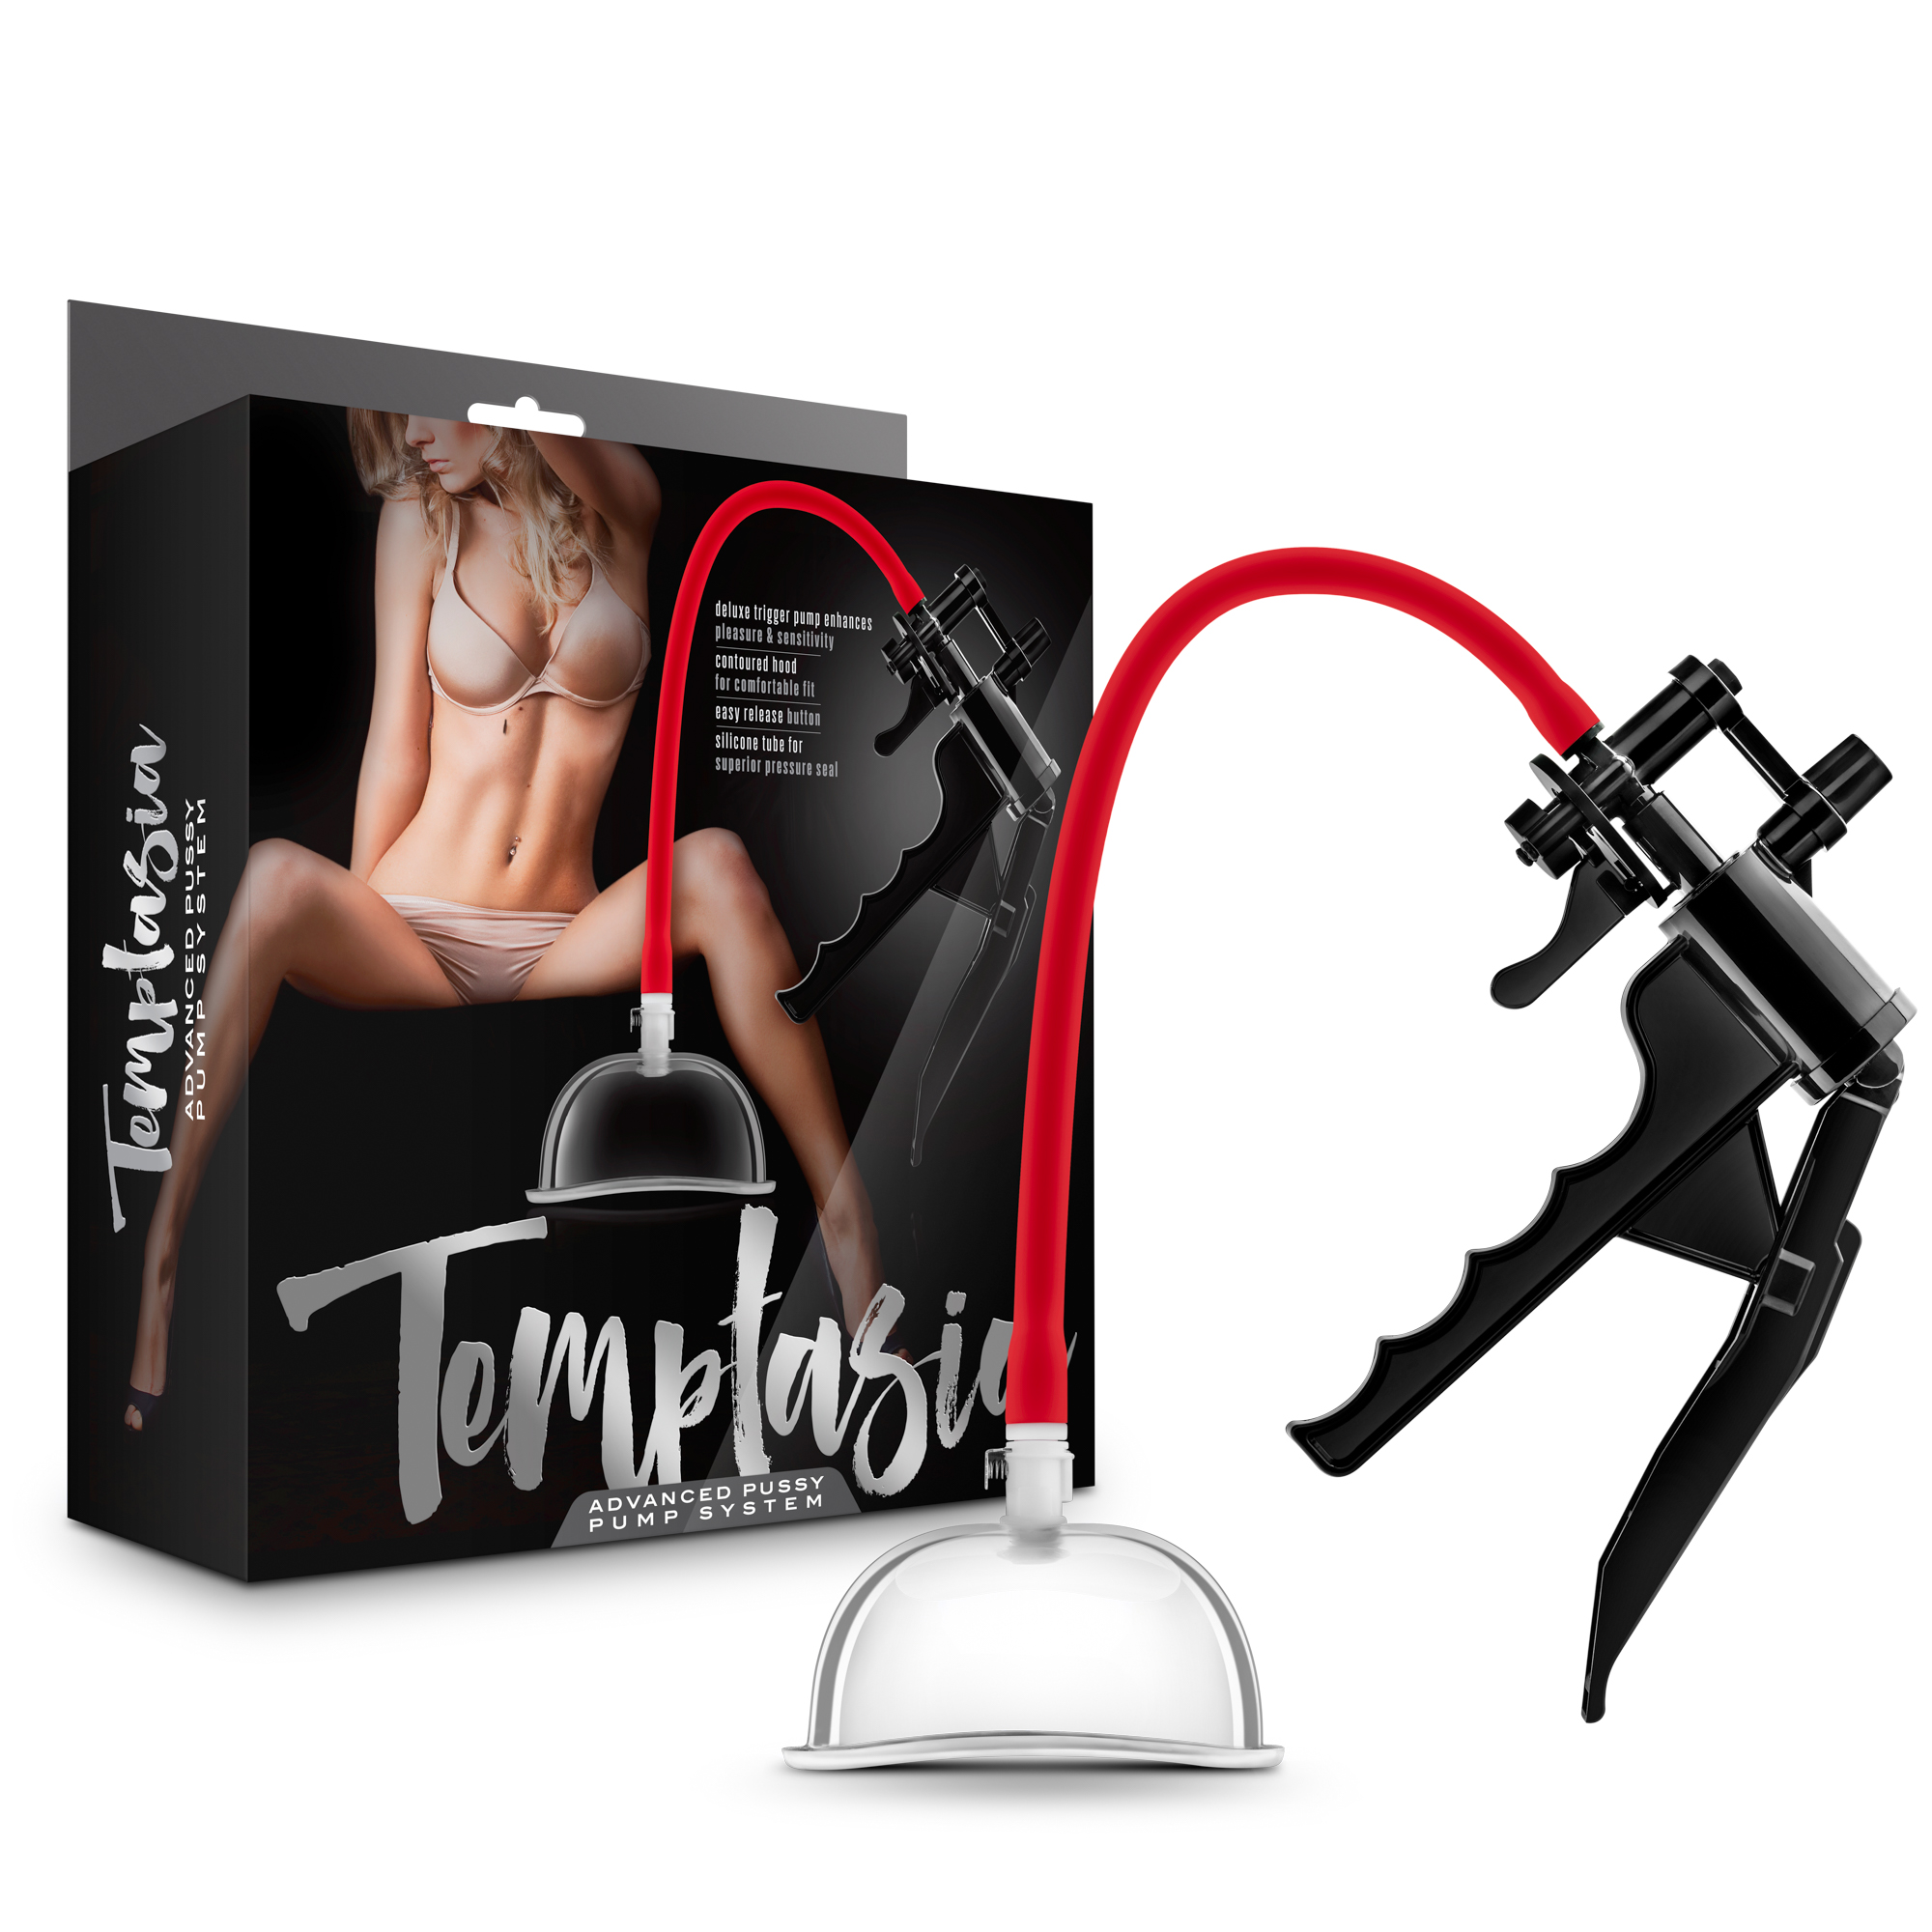 Temptasia - Advanced Pussy Pump System